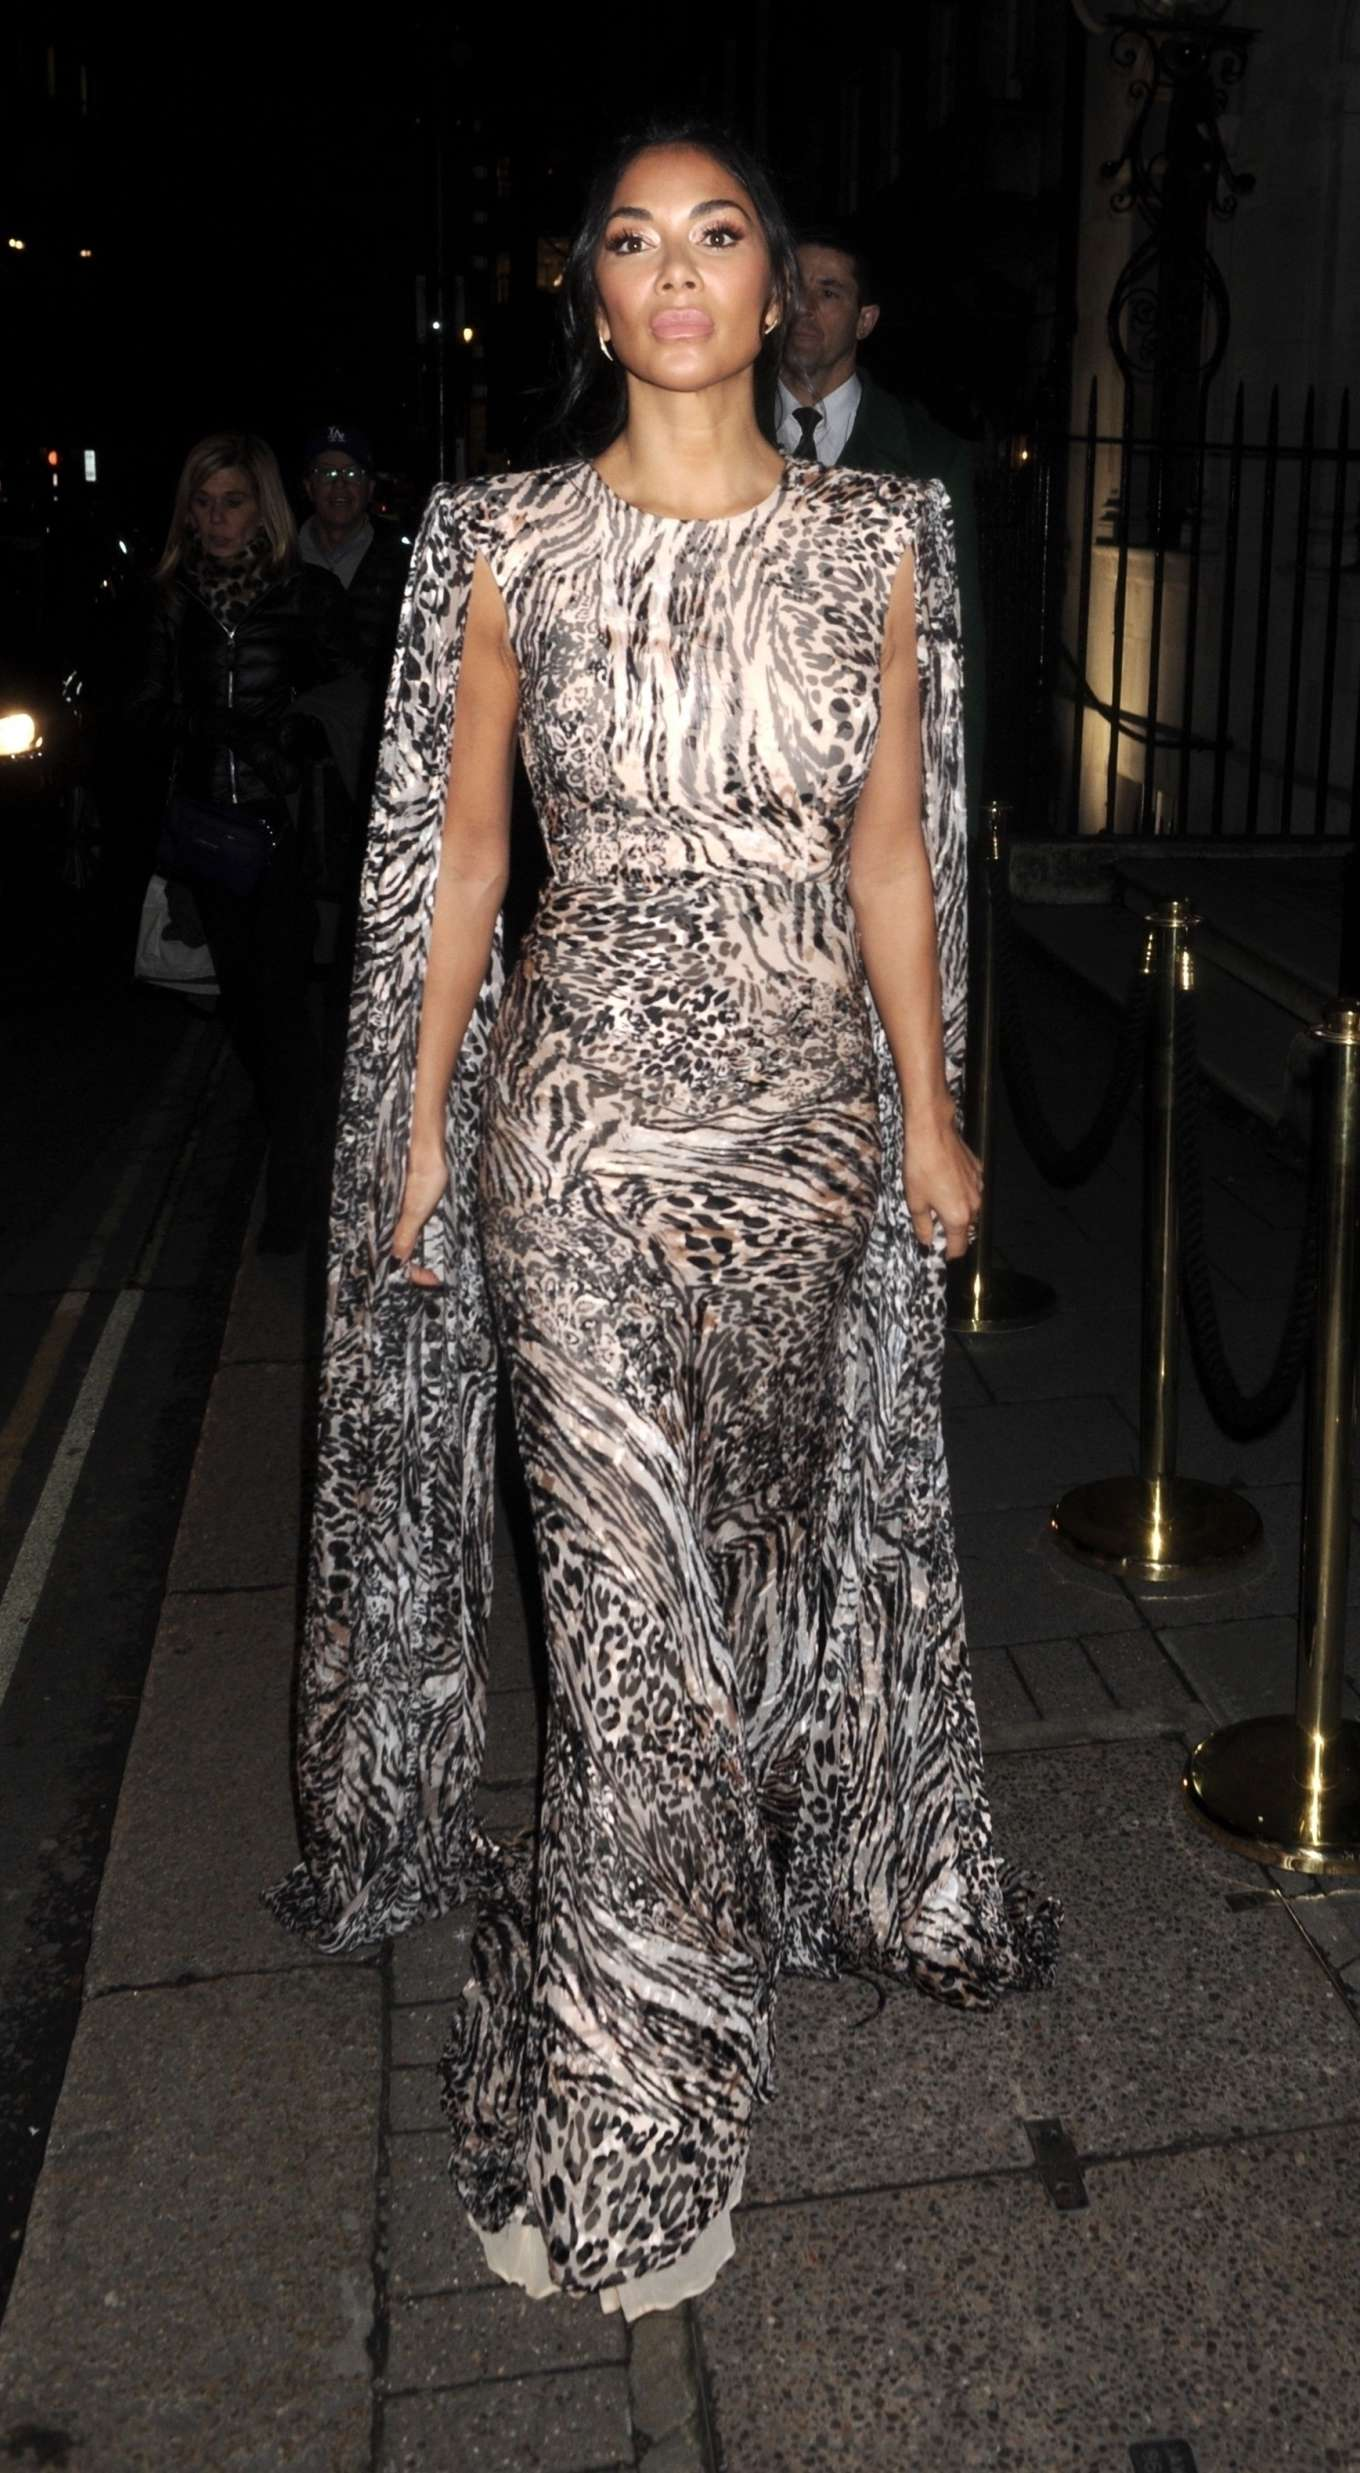 Nicole Scherzinger 2020 : Nicole Scherzinger – Arrives at British Vogues Fashion and Film Party 2020-02